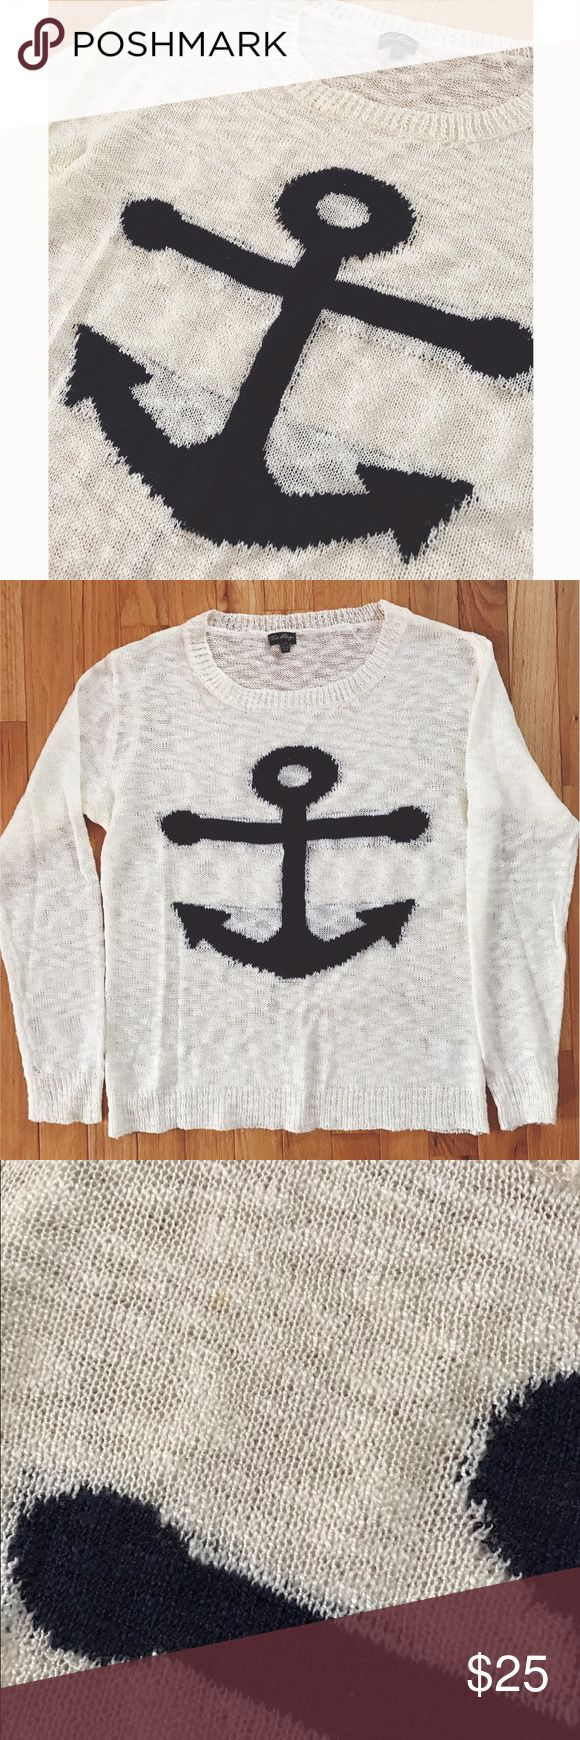 Anchor sweater⚓️ Super soft cream & navy anchor sweater! 100% acrylic material. One small stain shown in third picture. S/M fits 2-4 size approximately. The Rage  Sweaters Cardigans